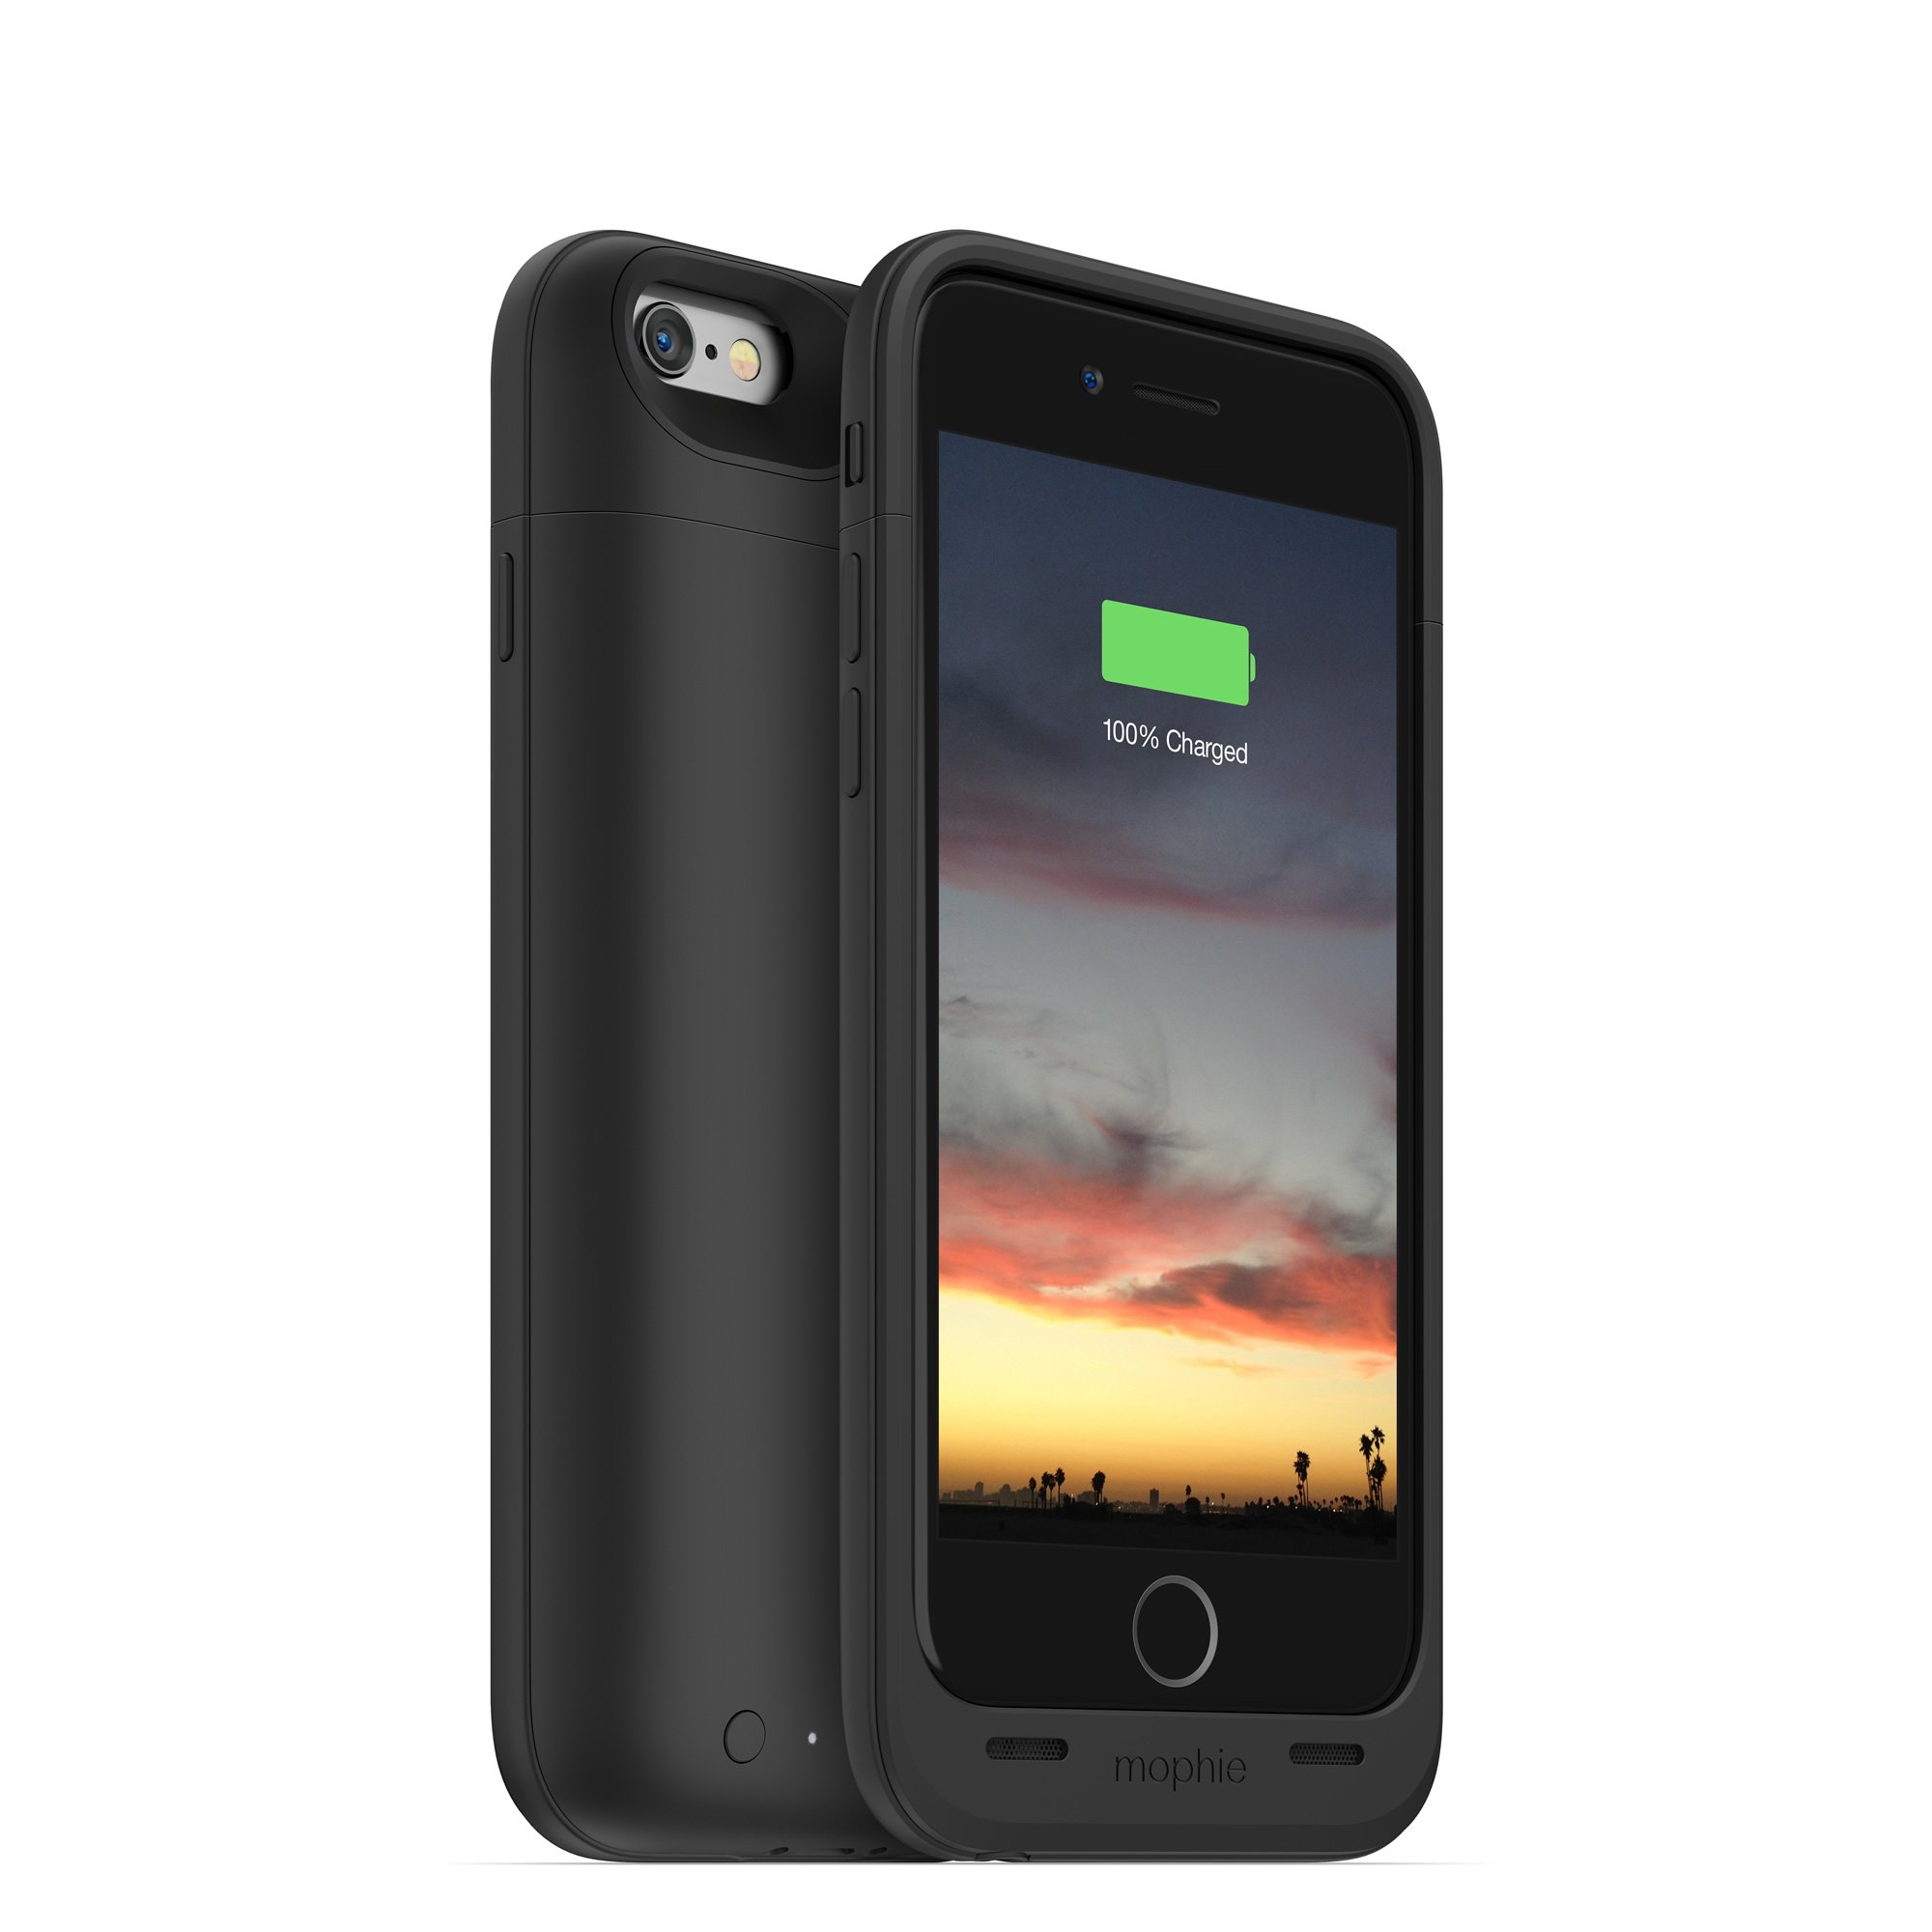 mophie juice pack air - Slim Protective Mobile Battery Pack Case for iPhone 6/6s - Black by mophie (Image #3)